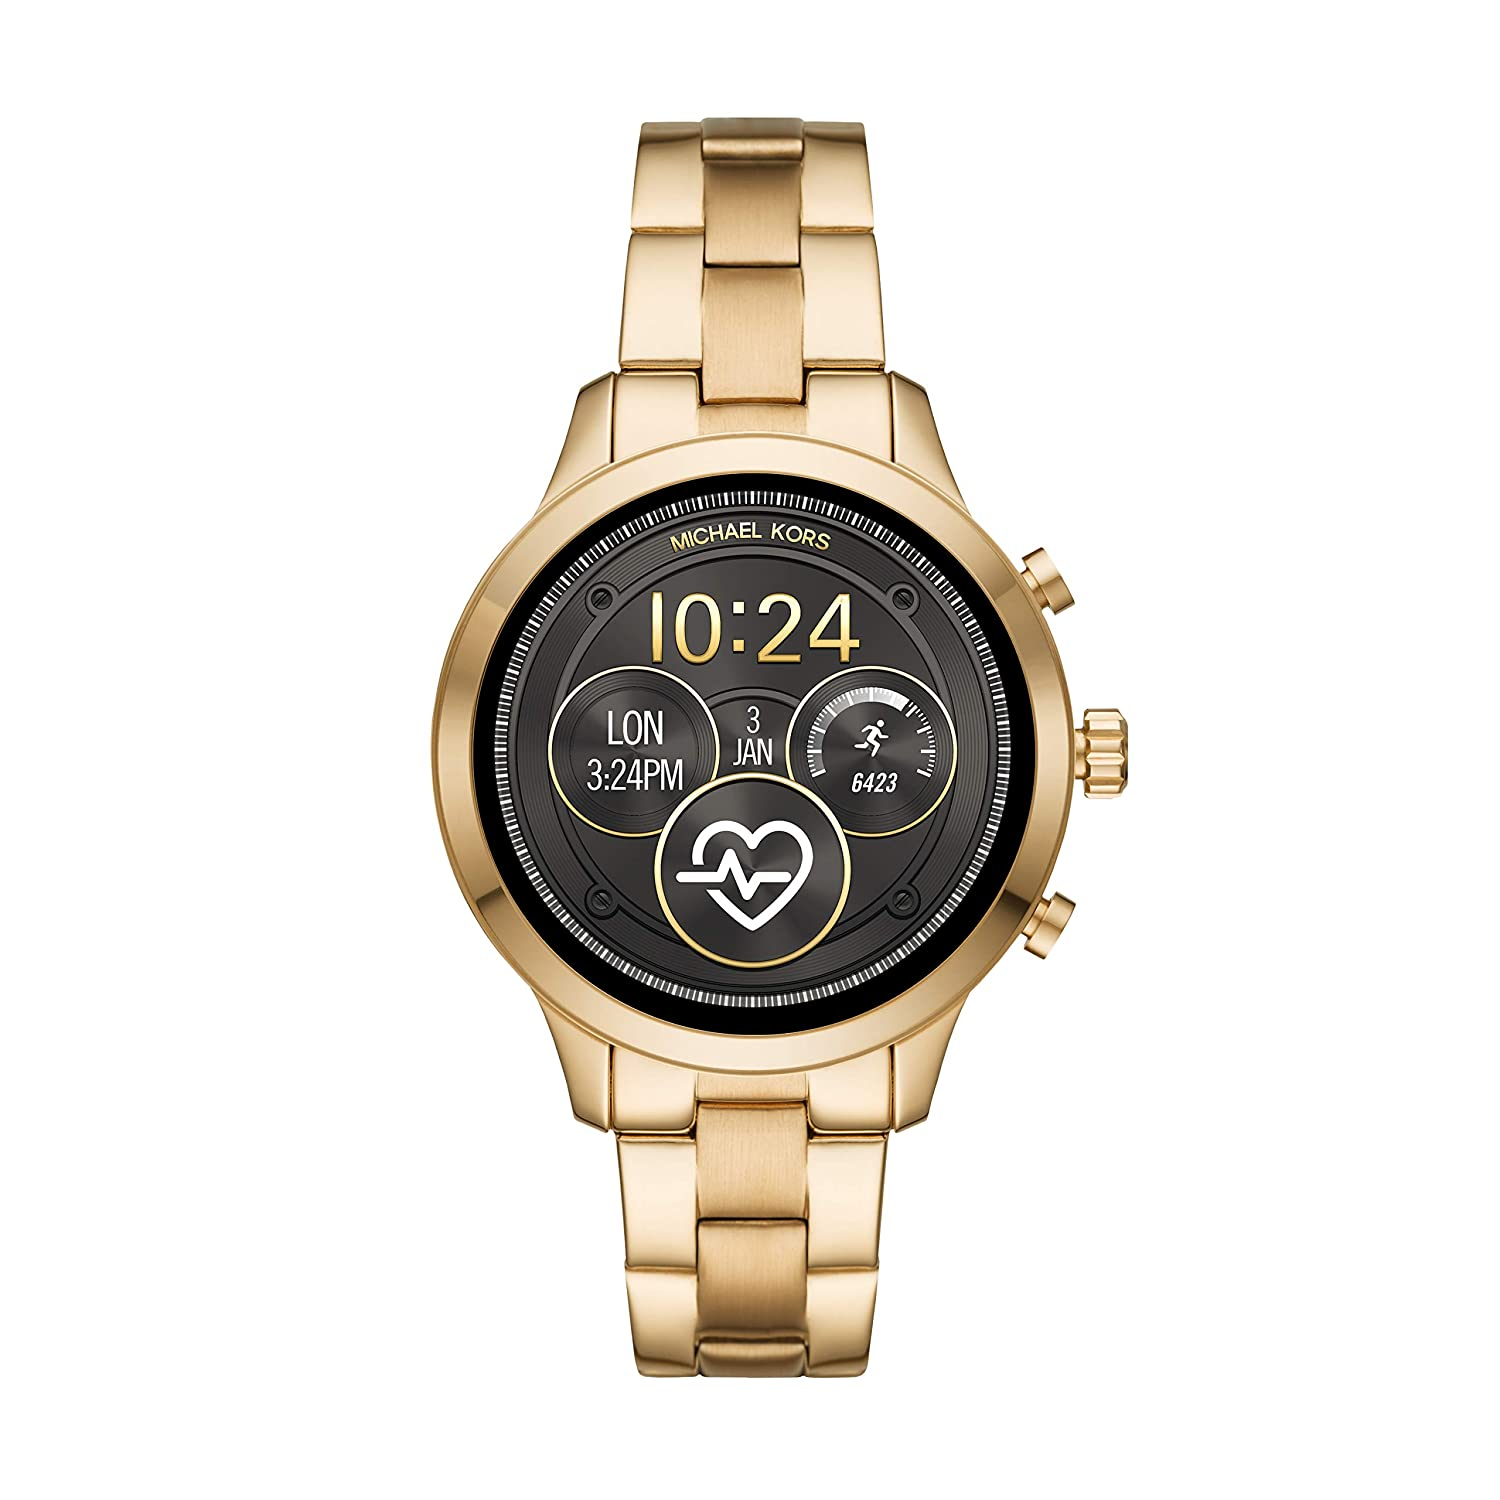 2a70b28fc726 Amazon.com  Michael Kors Women s Access Runway Stainless Steel Plated Touchscreen  Watch with Strap